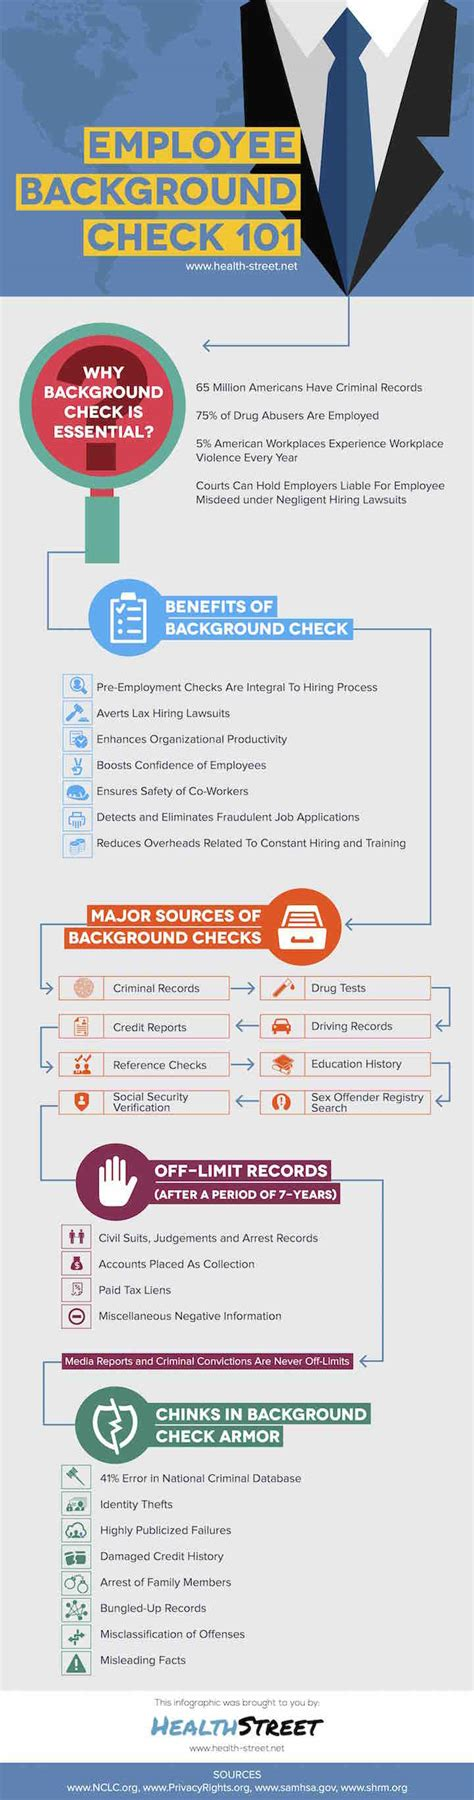 Employee Background Check Employee Background Check 101 Health